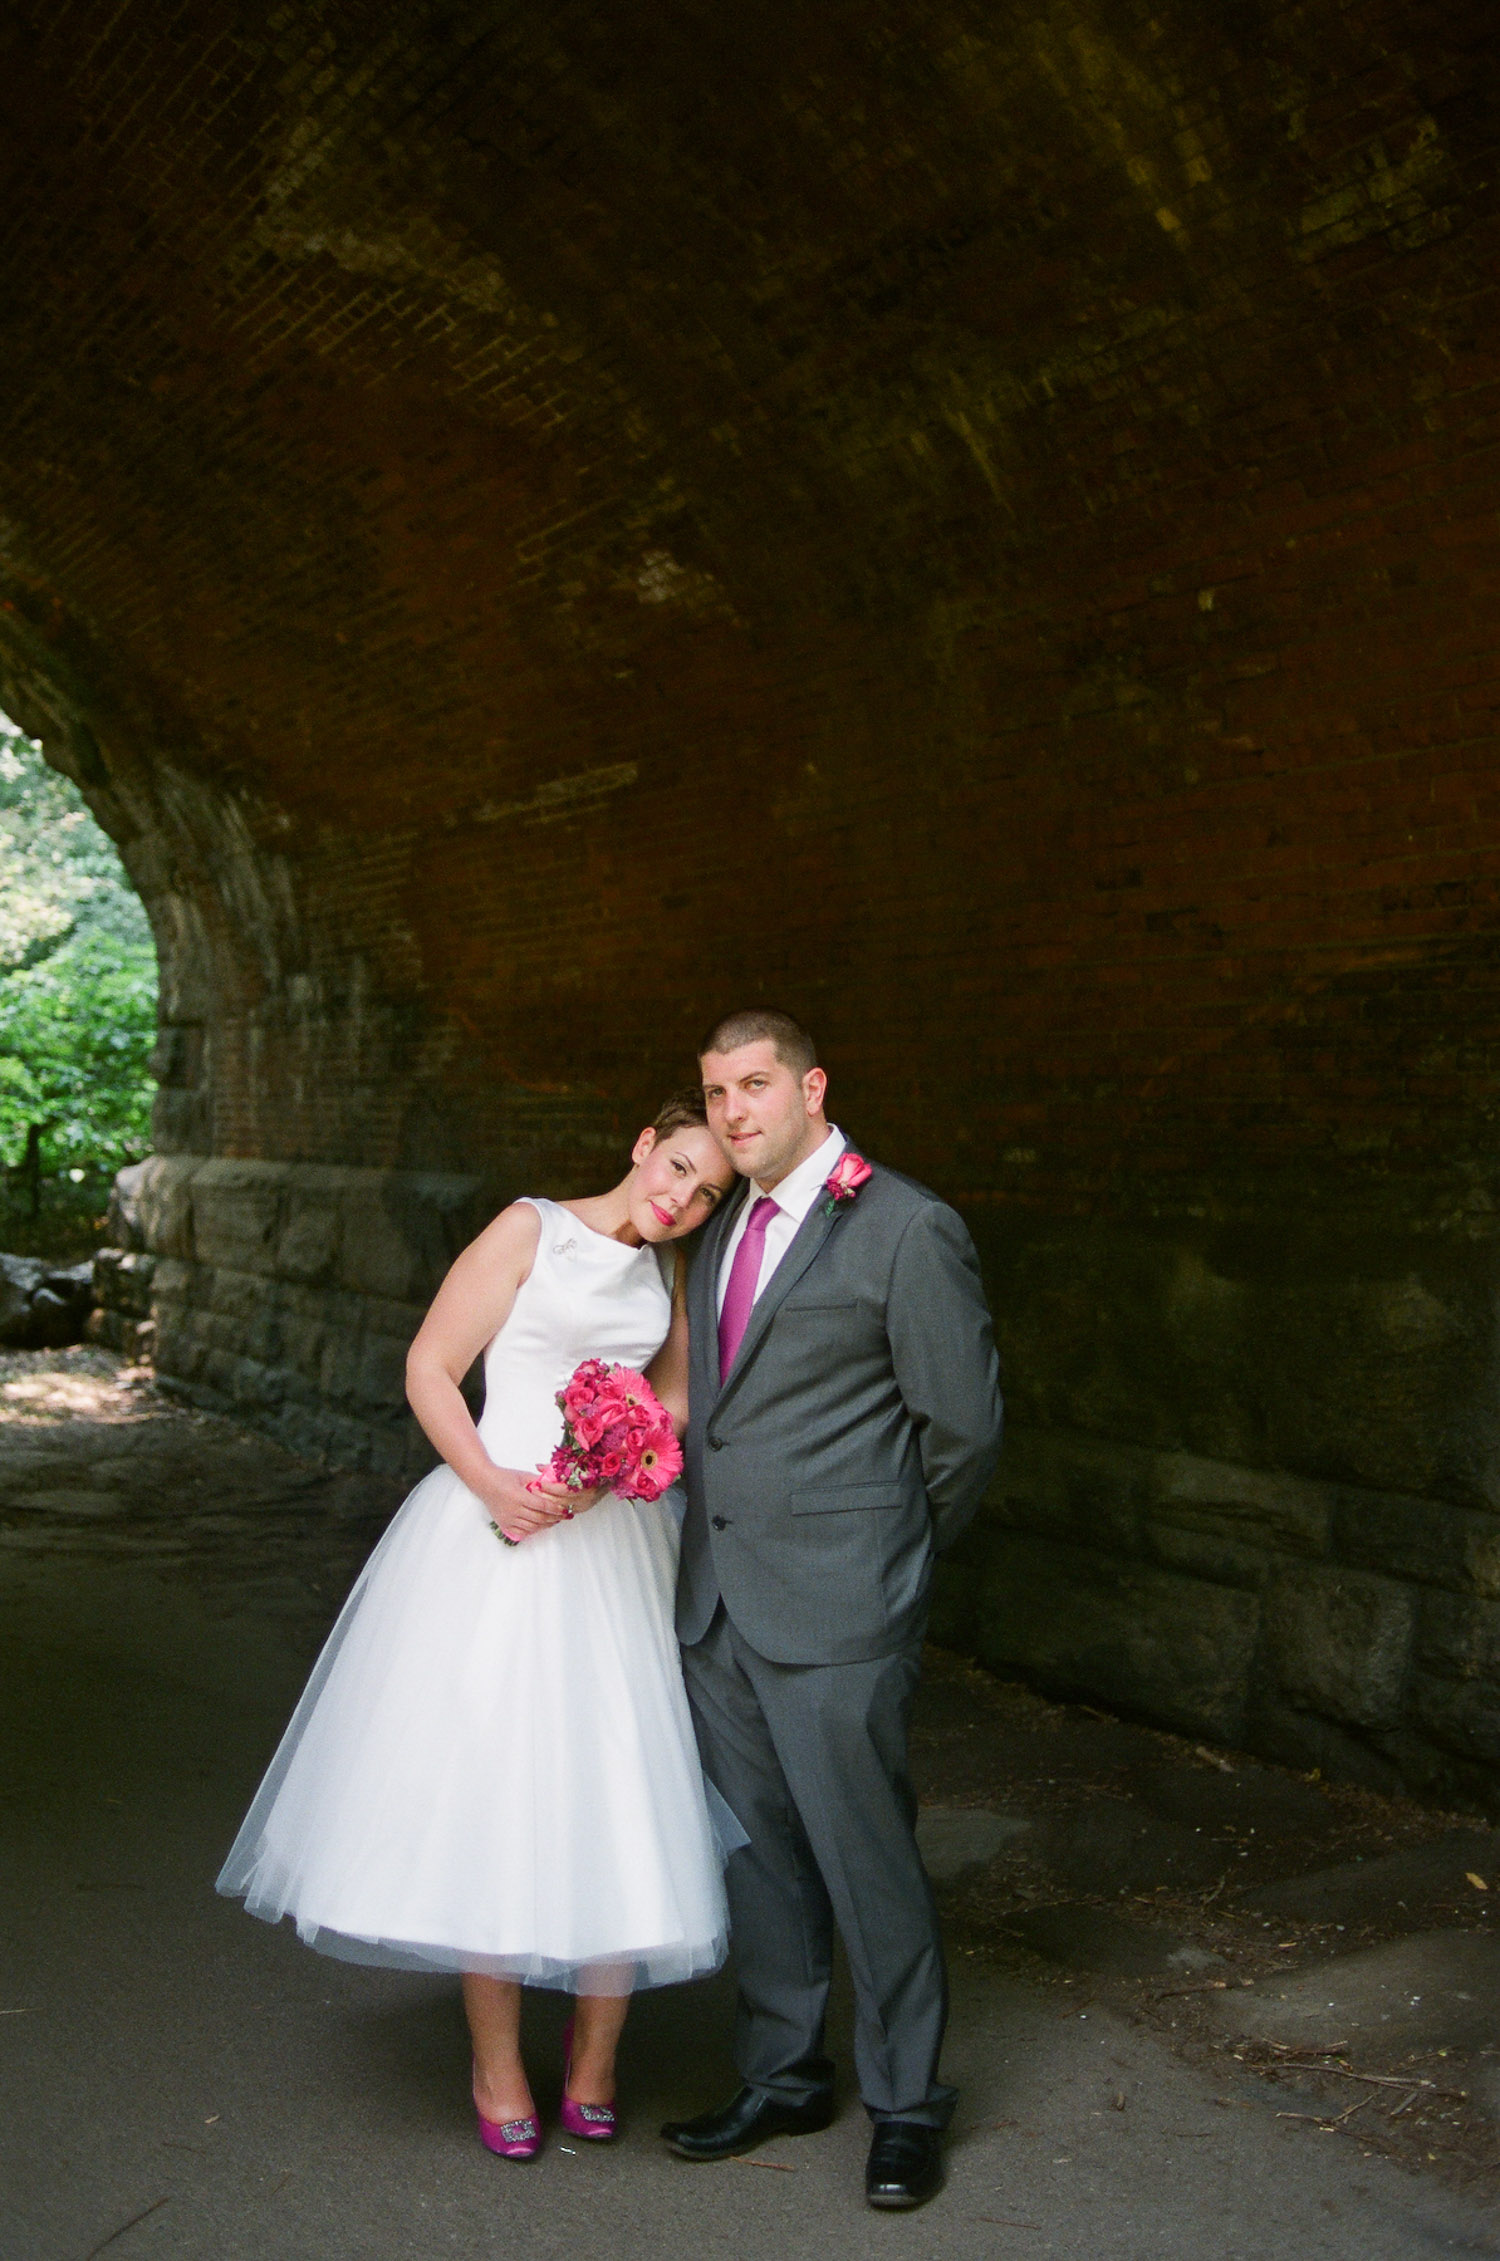 nyc central park mini wedding couple portrait photo by wendy g photography